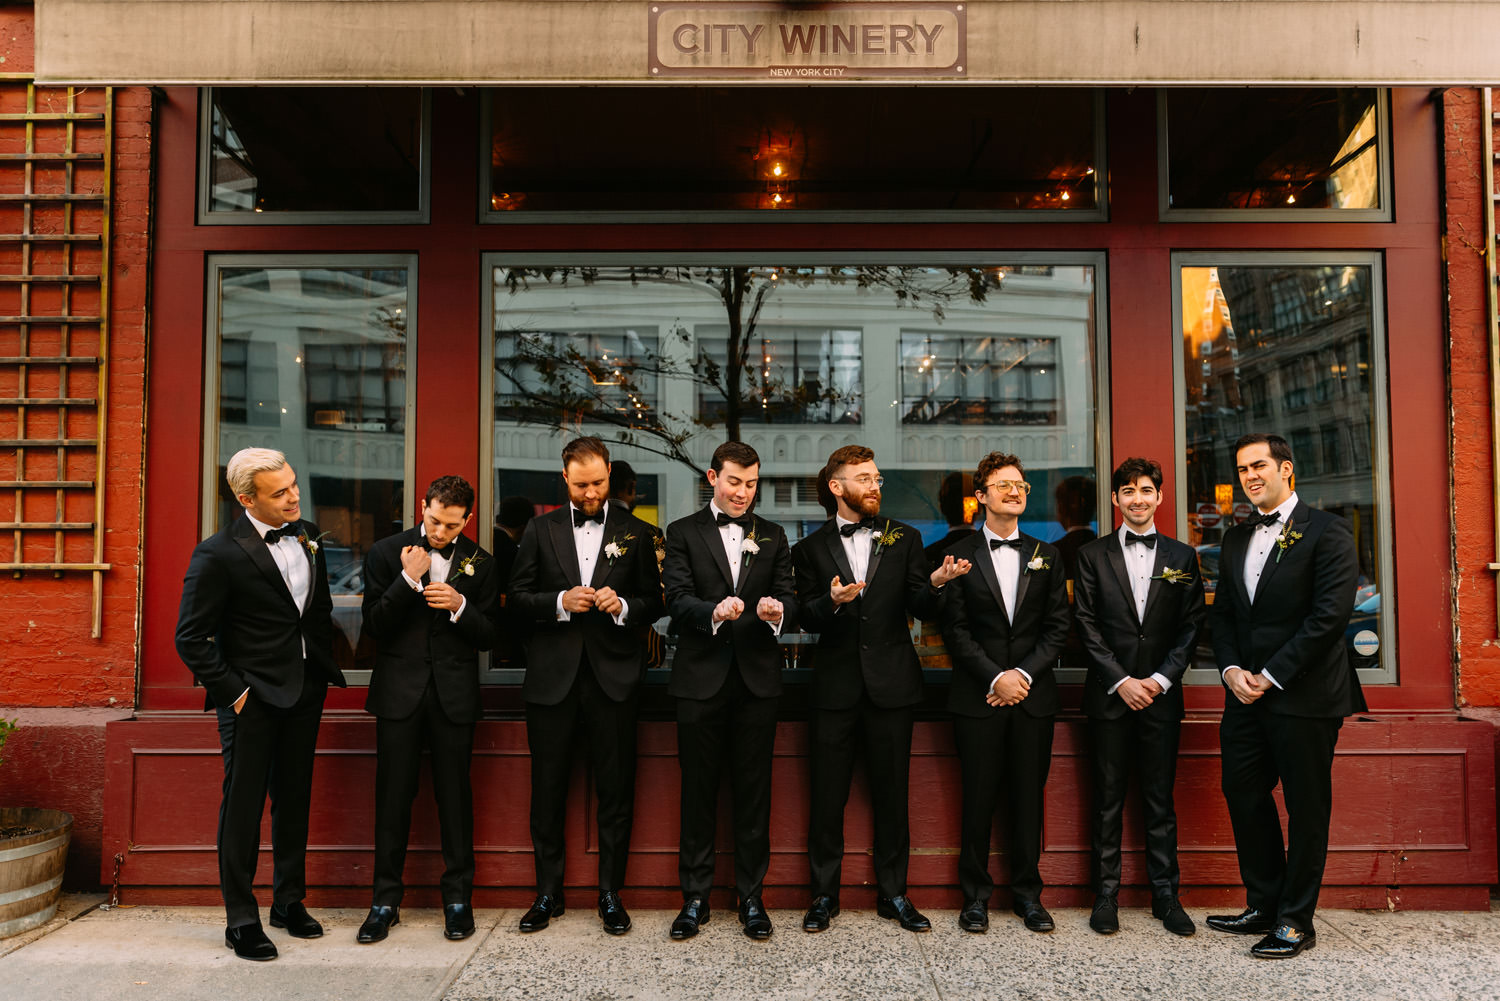 new york city winery wedding- groomsmen in front of the building